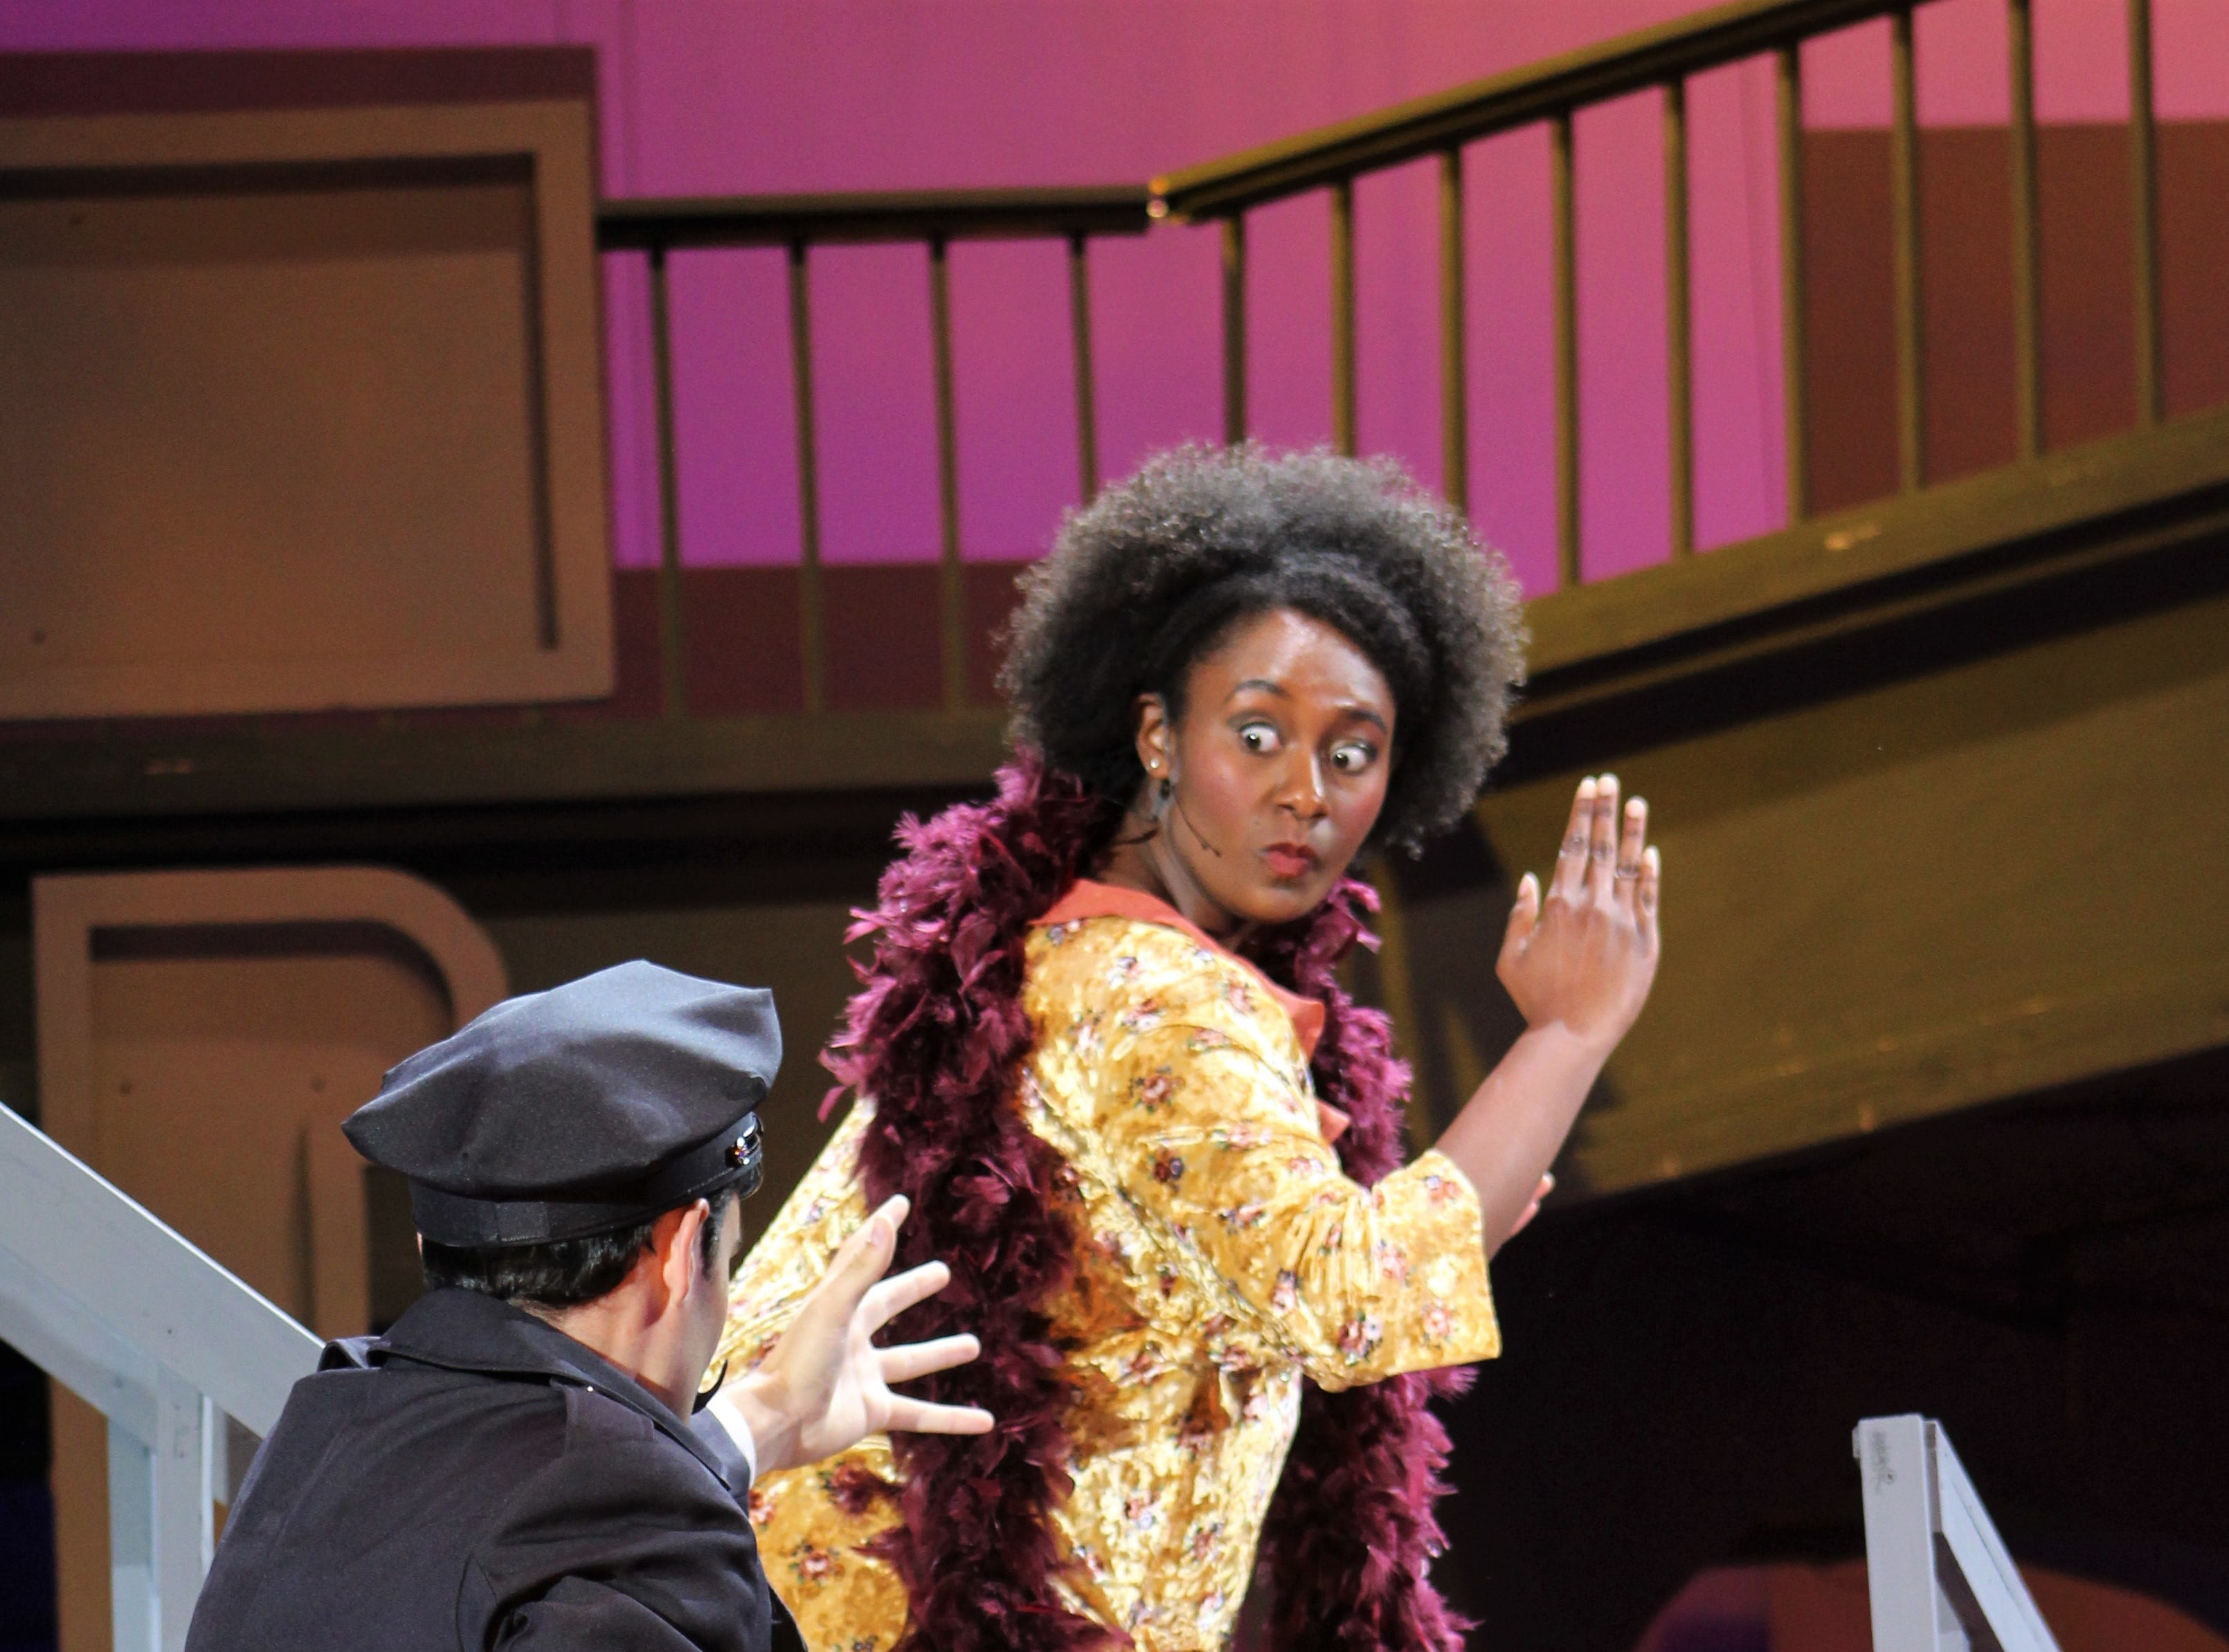 """Policeman Lonigan (Rankin Dean) gets after a Greenwich Village resident named Violet (Cleo Lissade) in this rehearsal scene from """"Wonderful Town,"""" Abilene Christian's 2018 homecoming musical."""